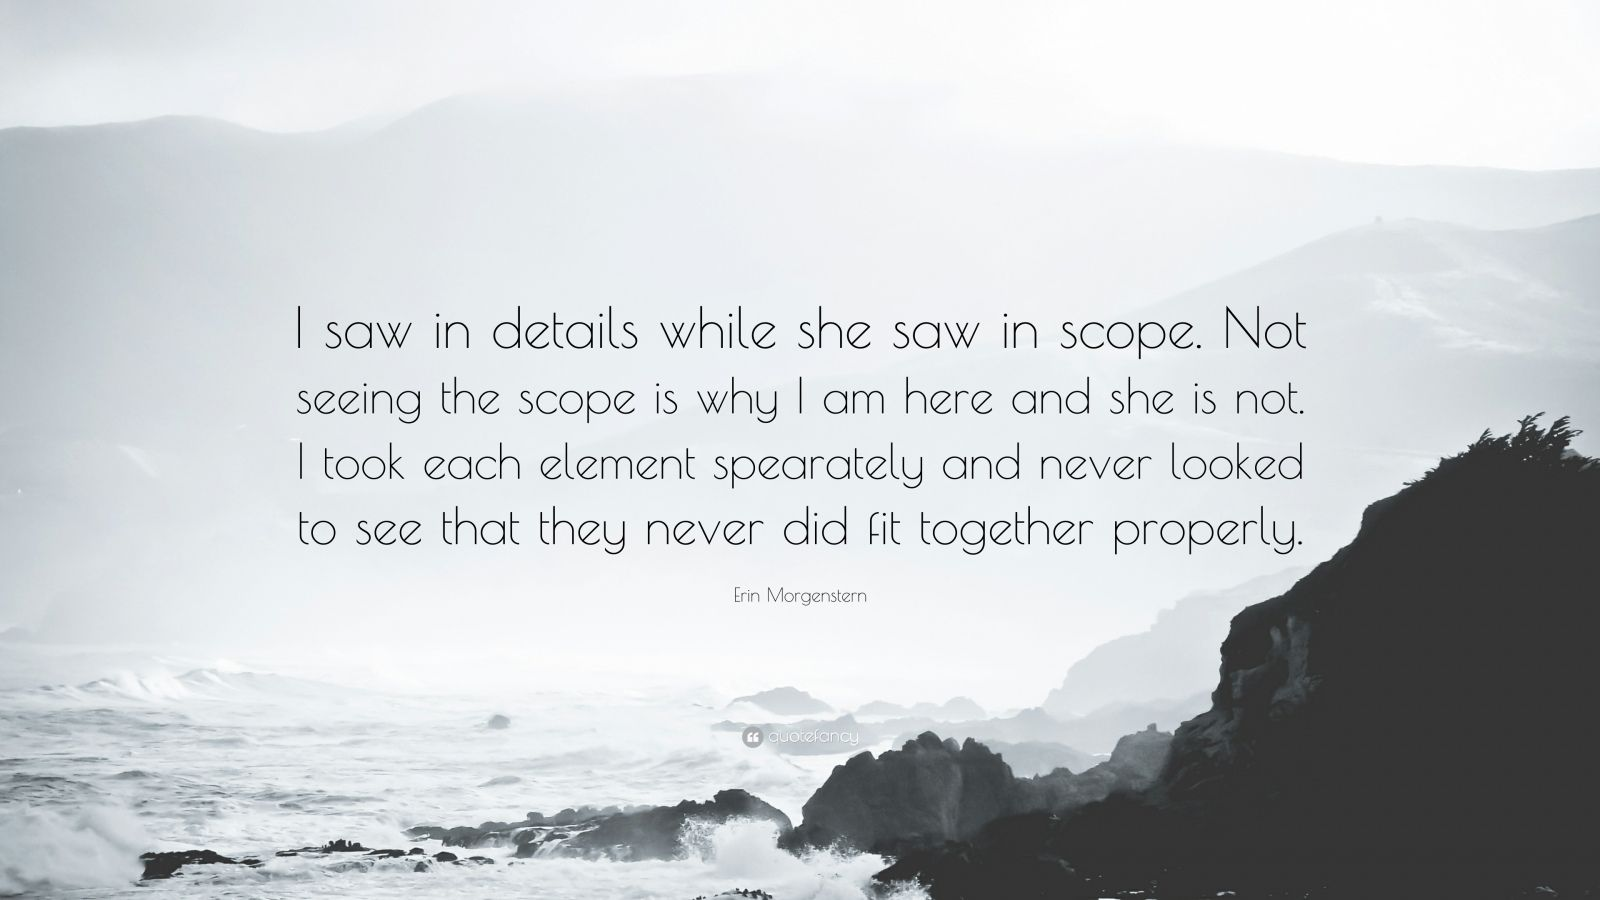 """Erin Morgenstern Quote: """"I saw in details while she saw in scope. Not seeing the scope is why I am here and she is not. I took each element spearately and never looked to see that they never did fit together properly."""""""